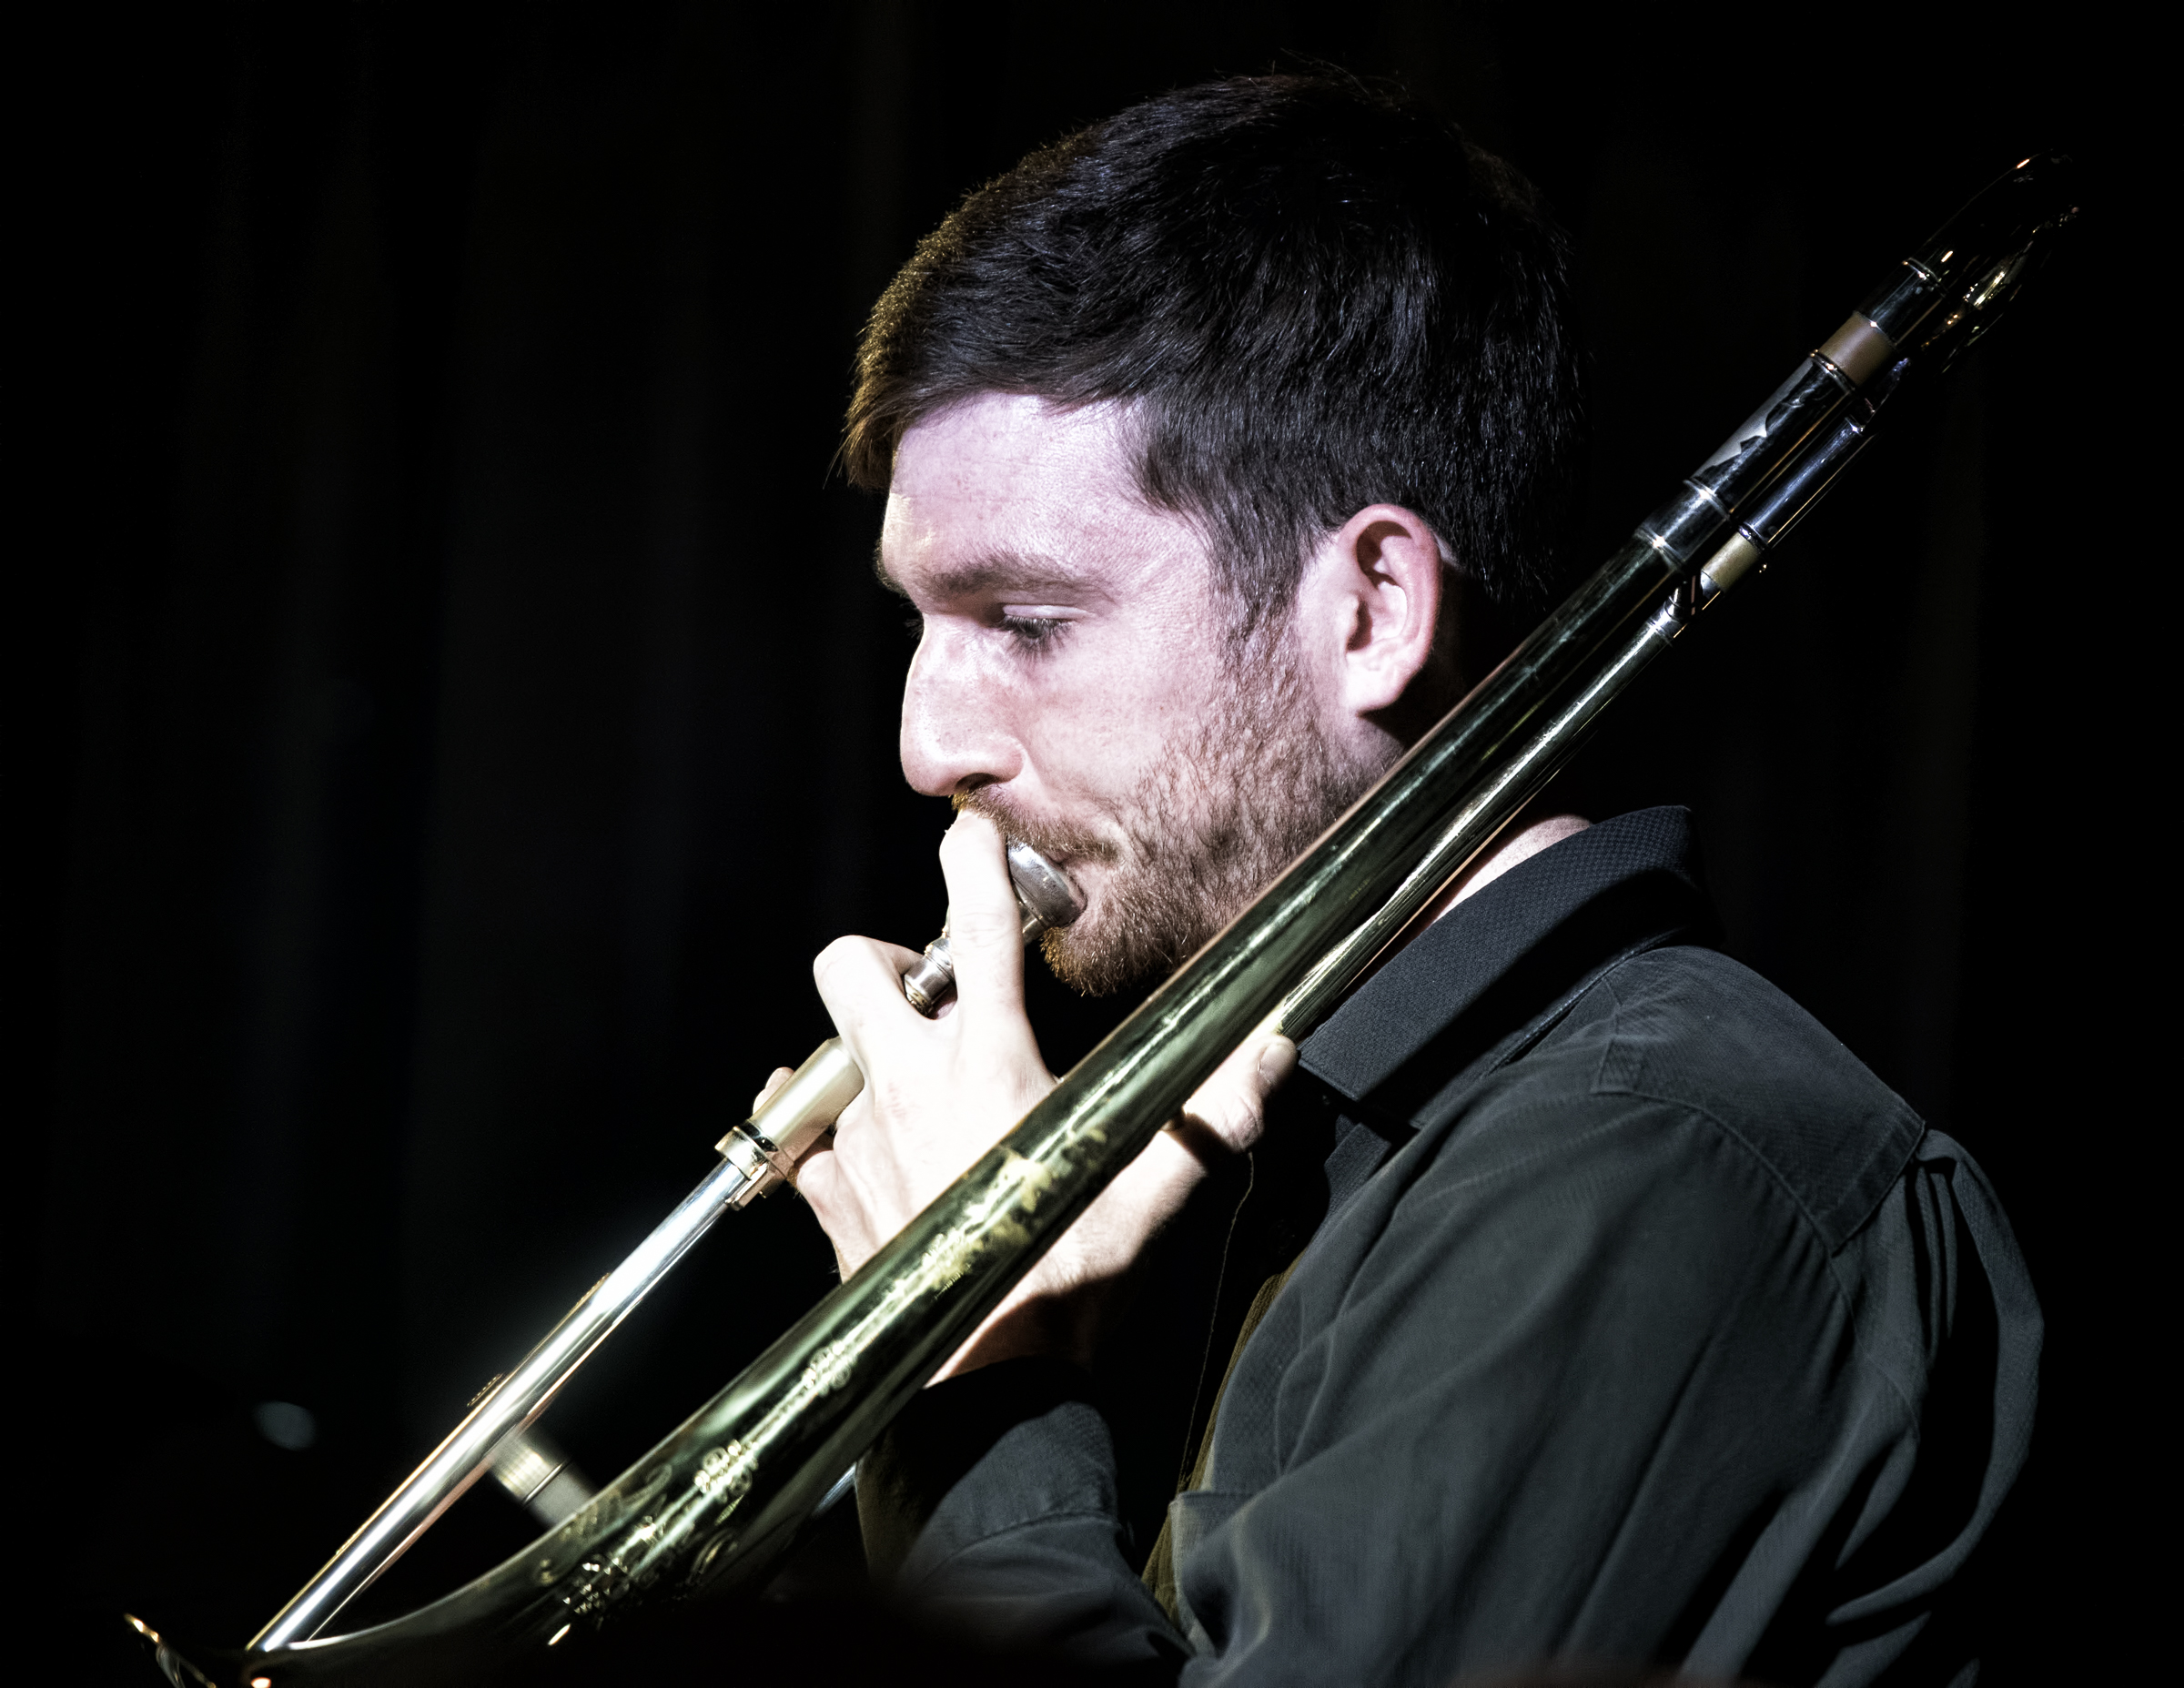 Sean McDaniel With Eric Rasmussen And Scottsdale Community College Jazz Orchestra At The Nash in Phoenix